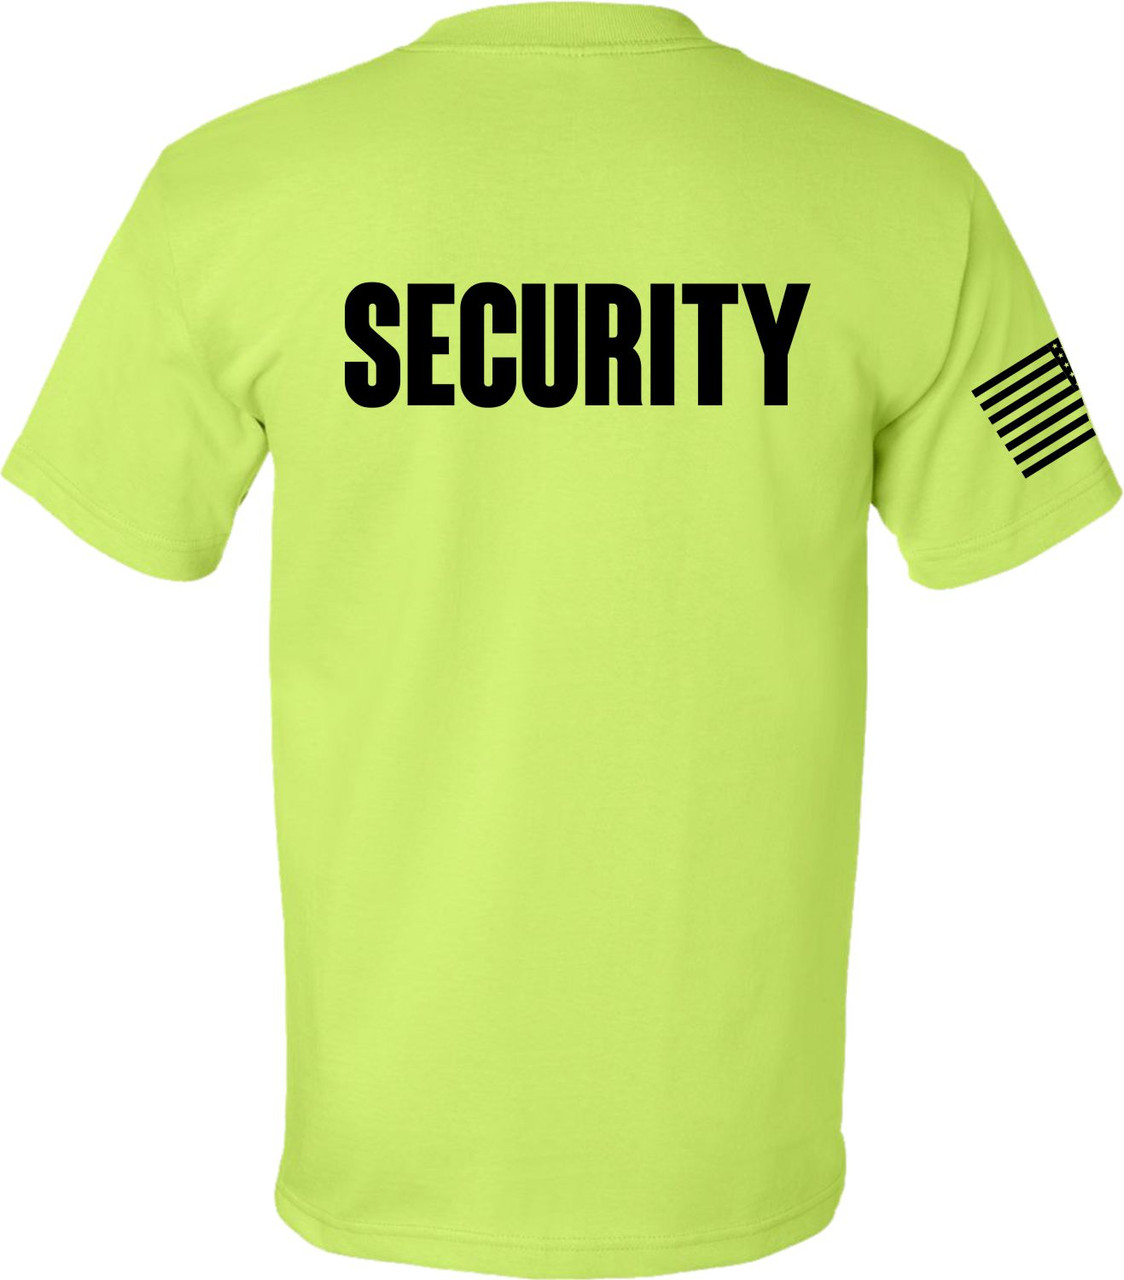 Security Shirt Made in the USA